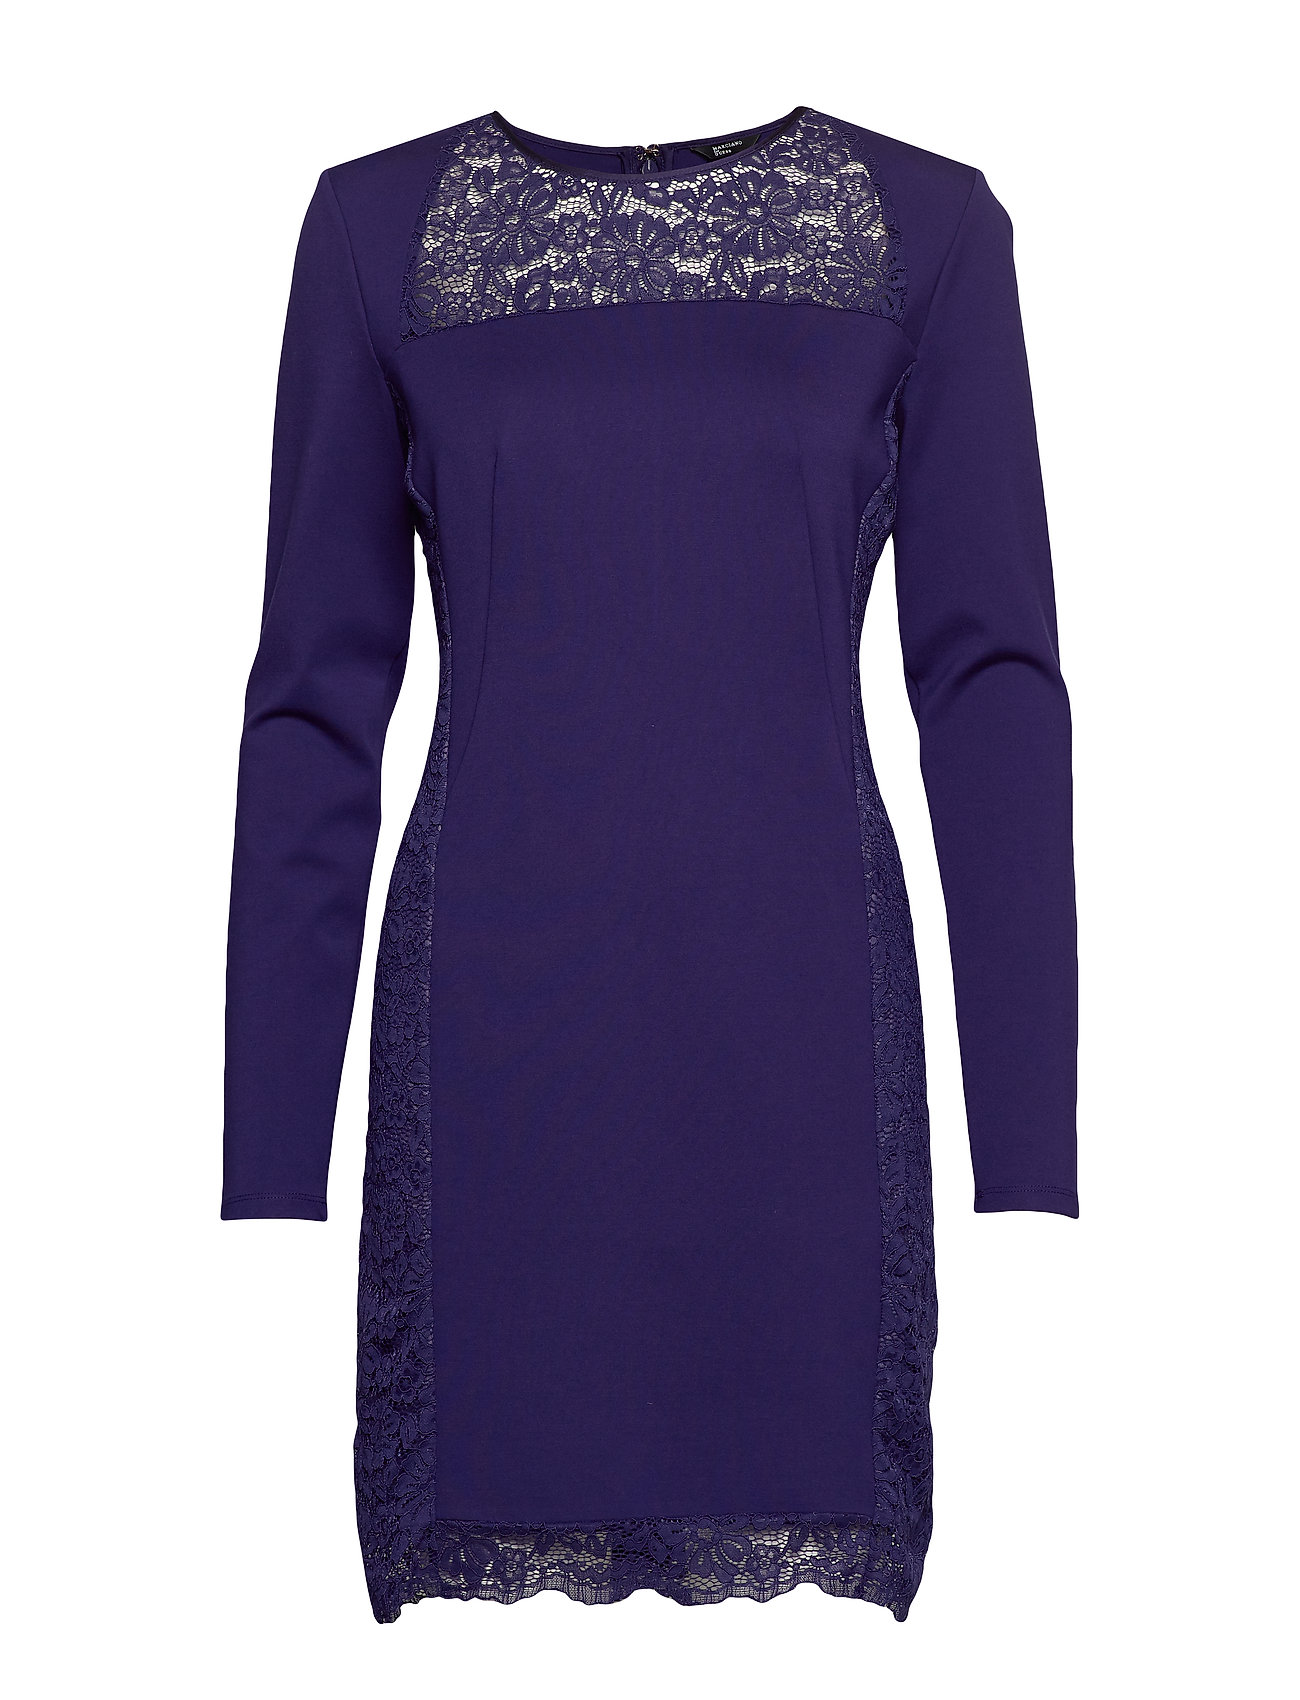 Marciano by GUESS MAUVE DRESS - MIDNIGHT ON MARS